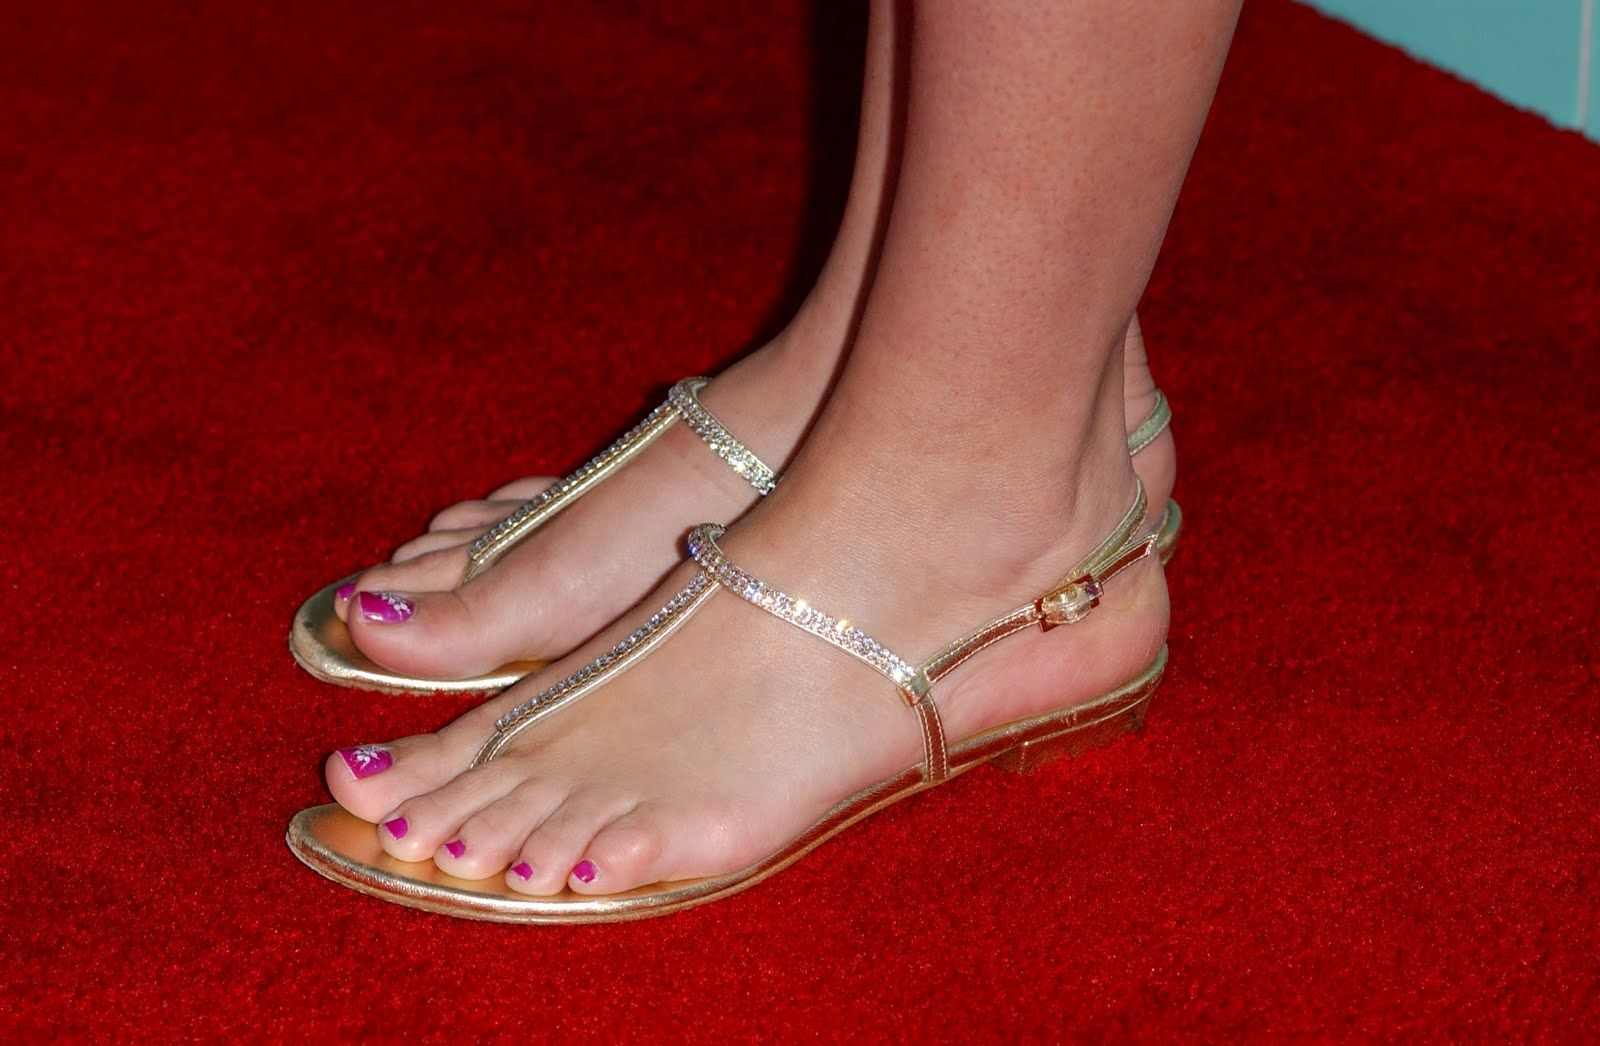 A Celebrity Fetish Website Ranks The Feet Of All ... - UPROXX